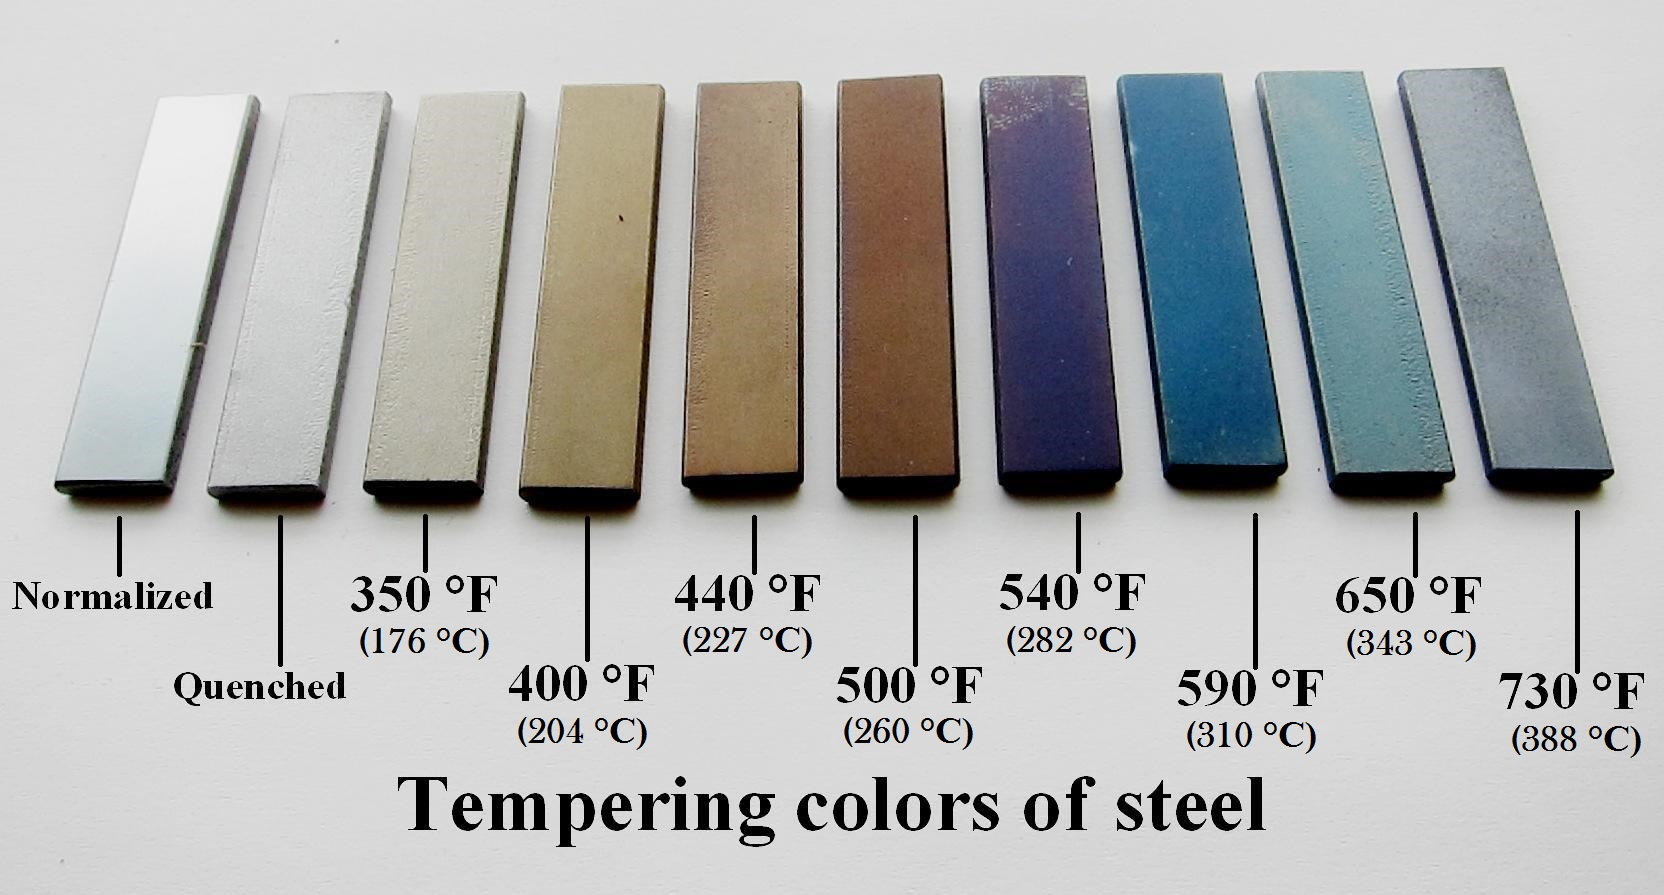 File:Tempering standards used in blacksmithing.JPG - Wikimedia Commons